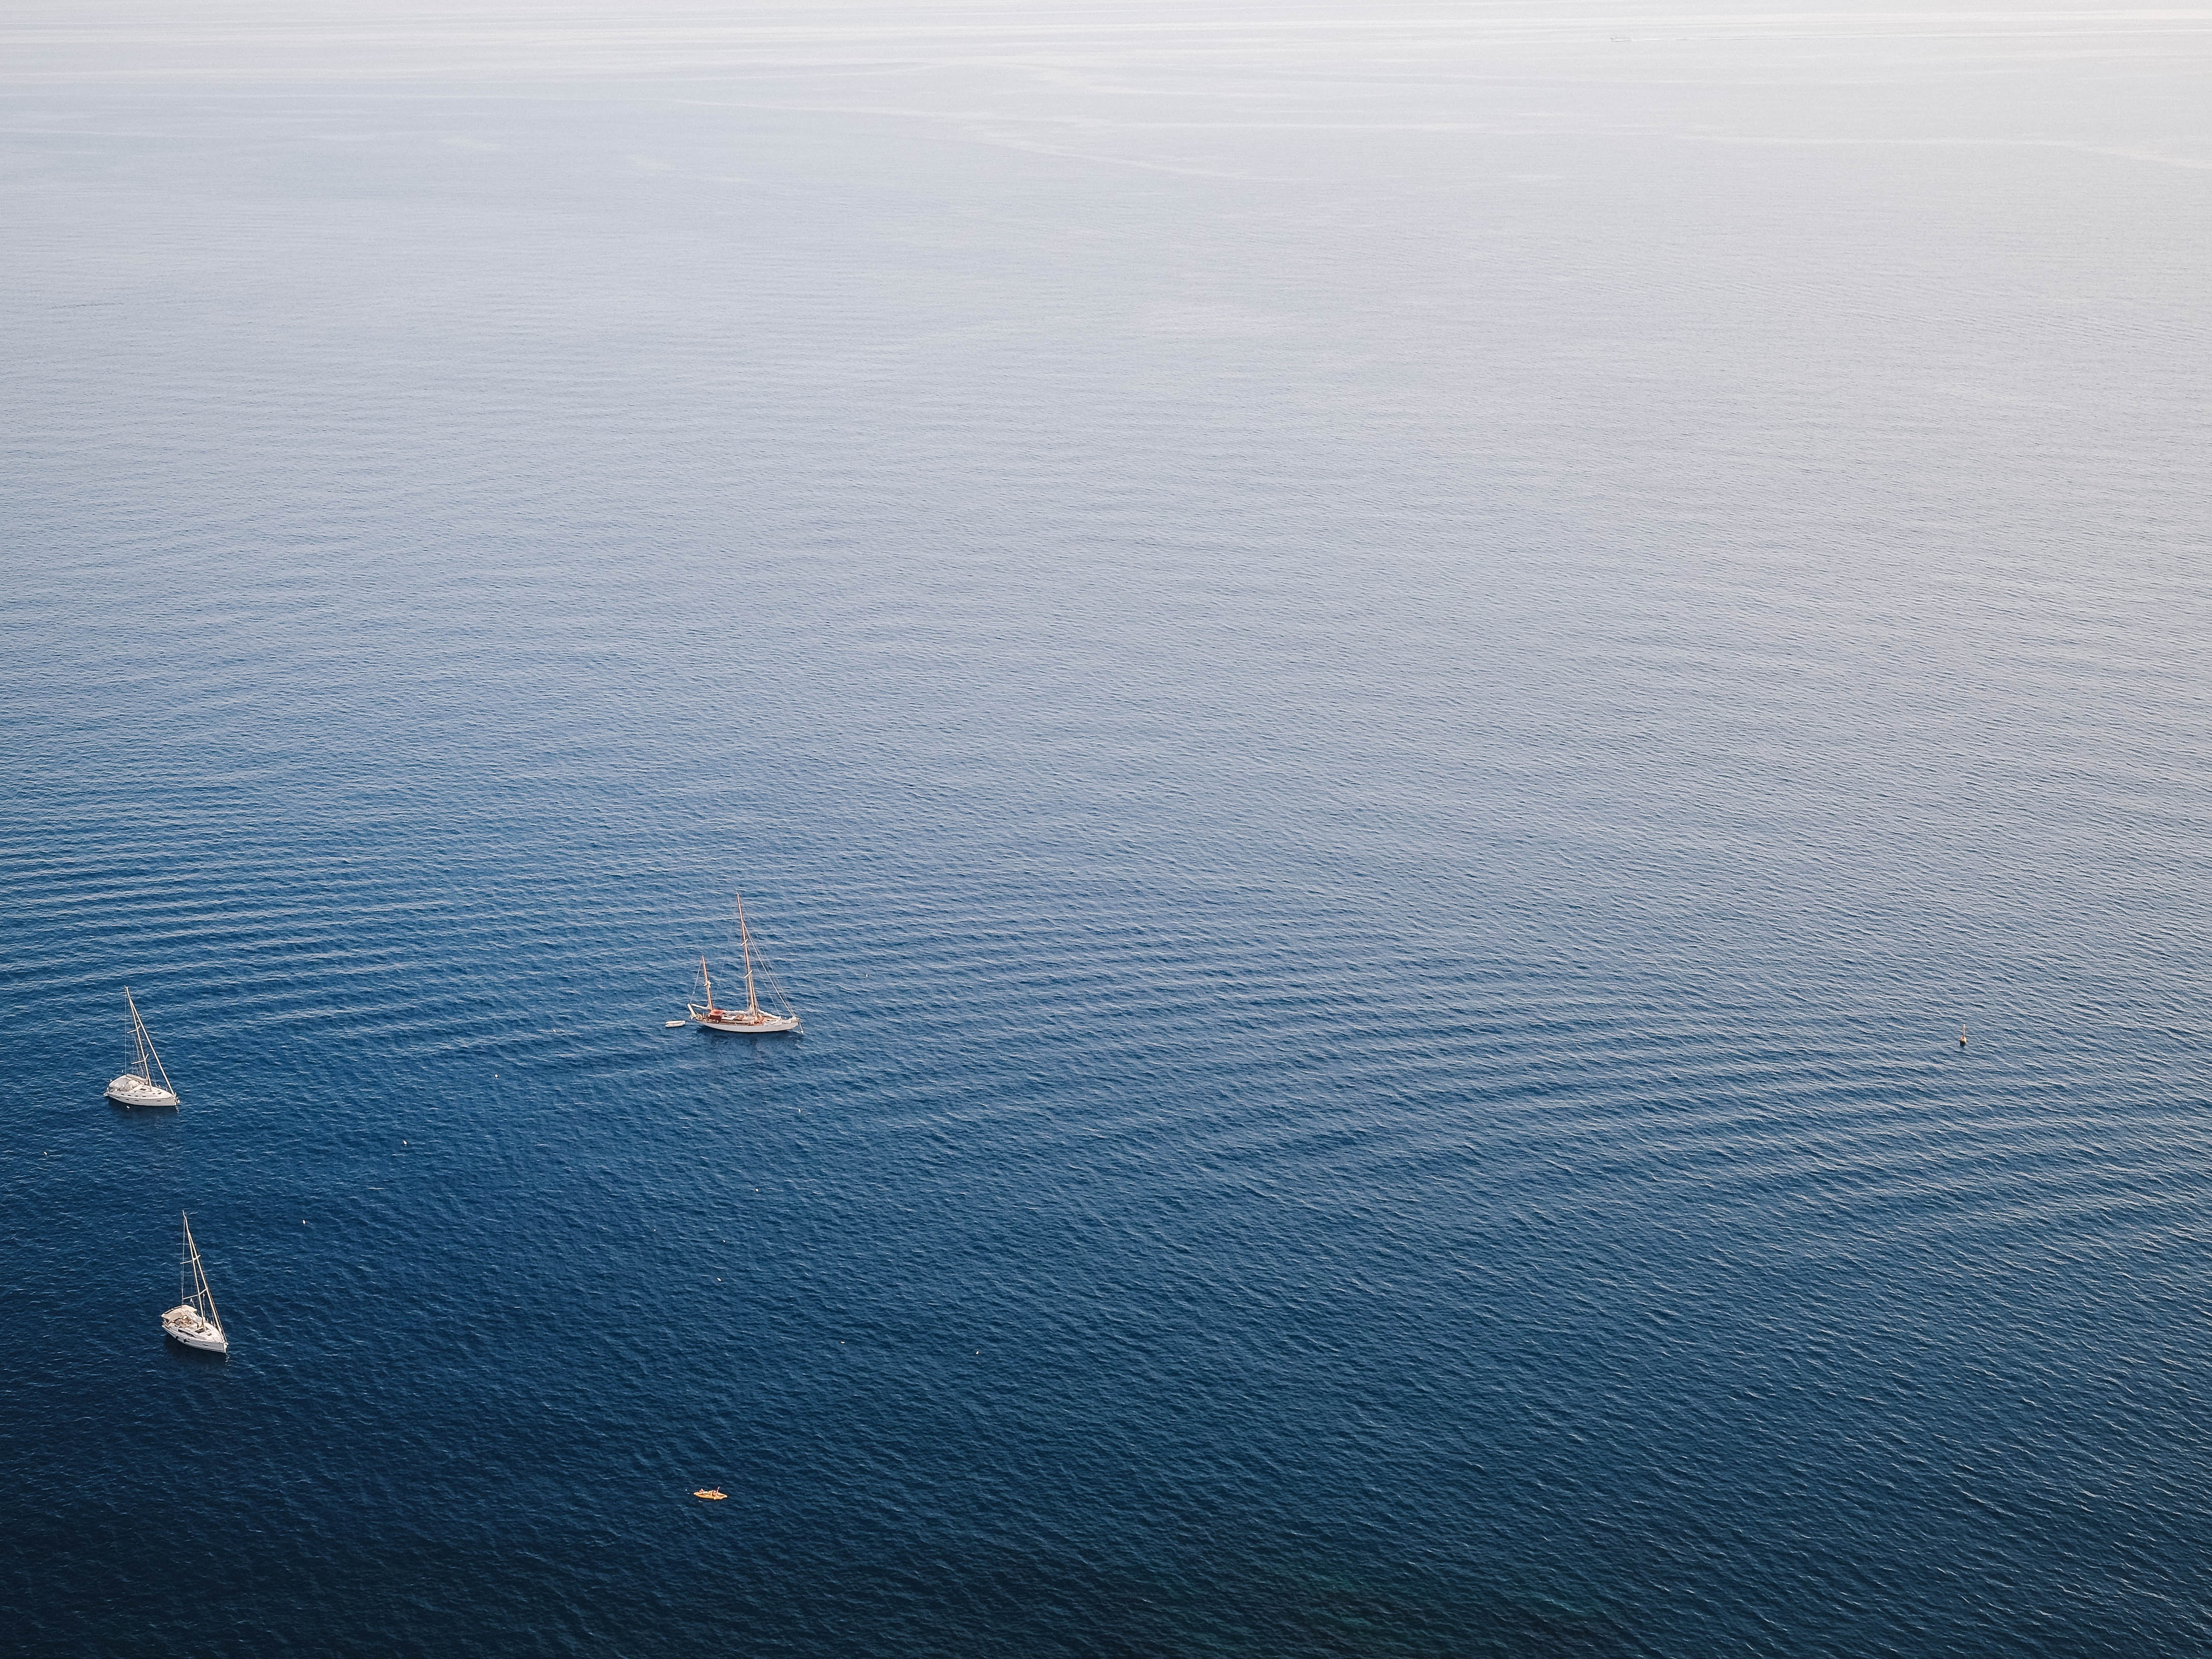 aerial photo of a body of water and fishing vessels